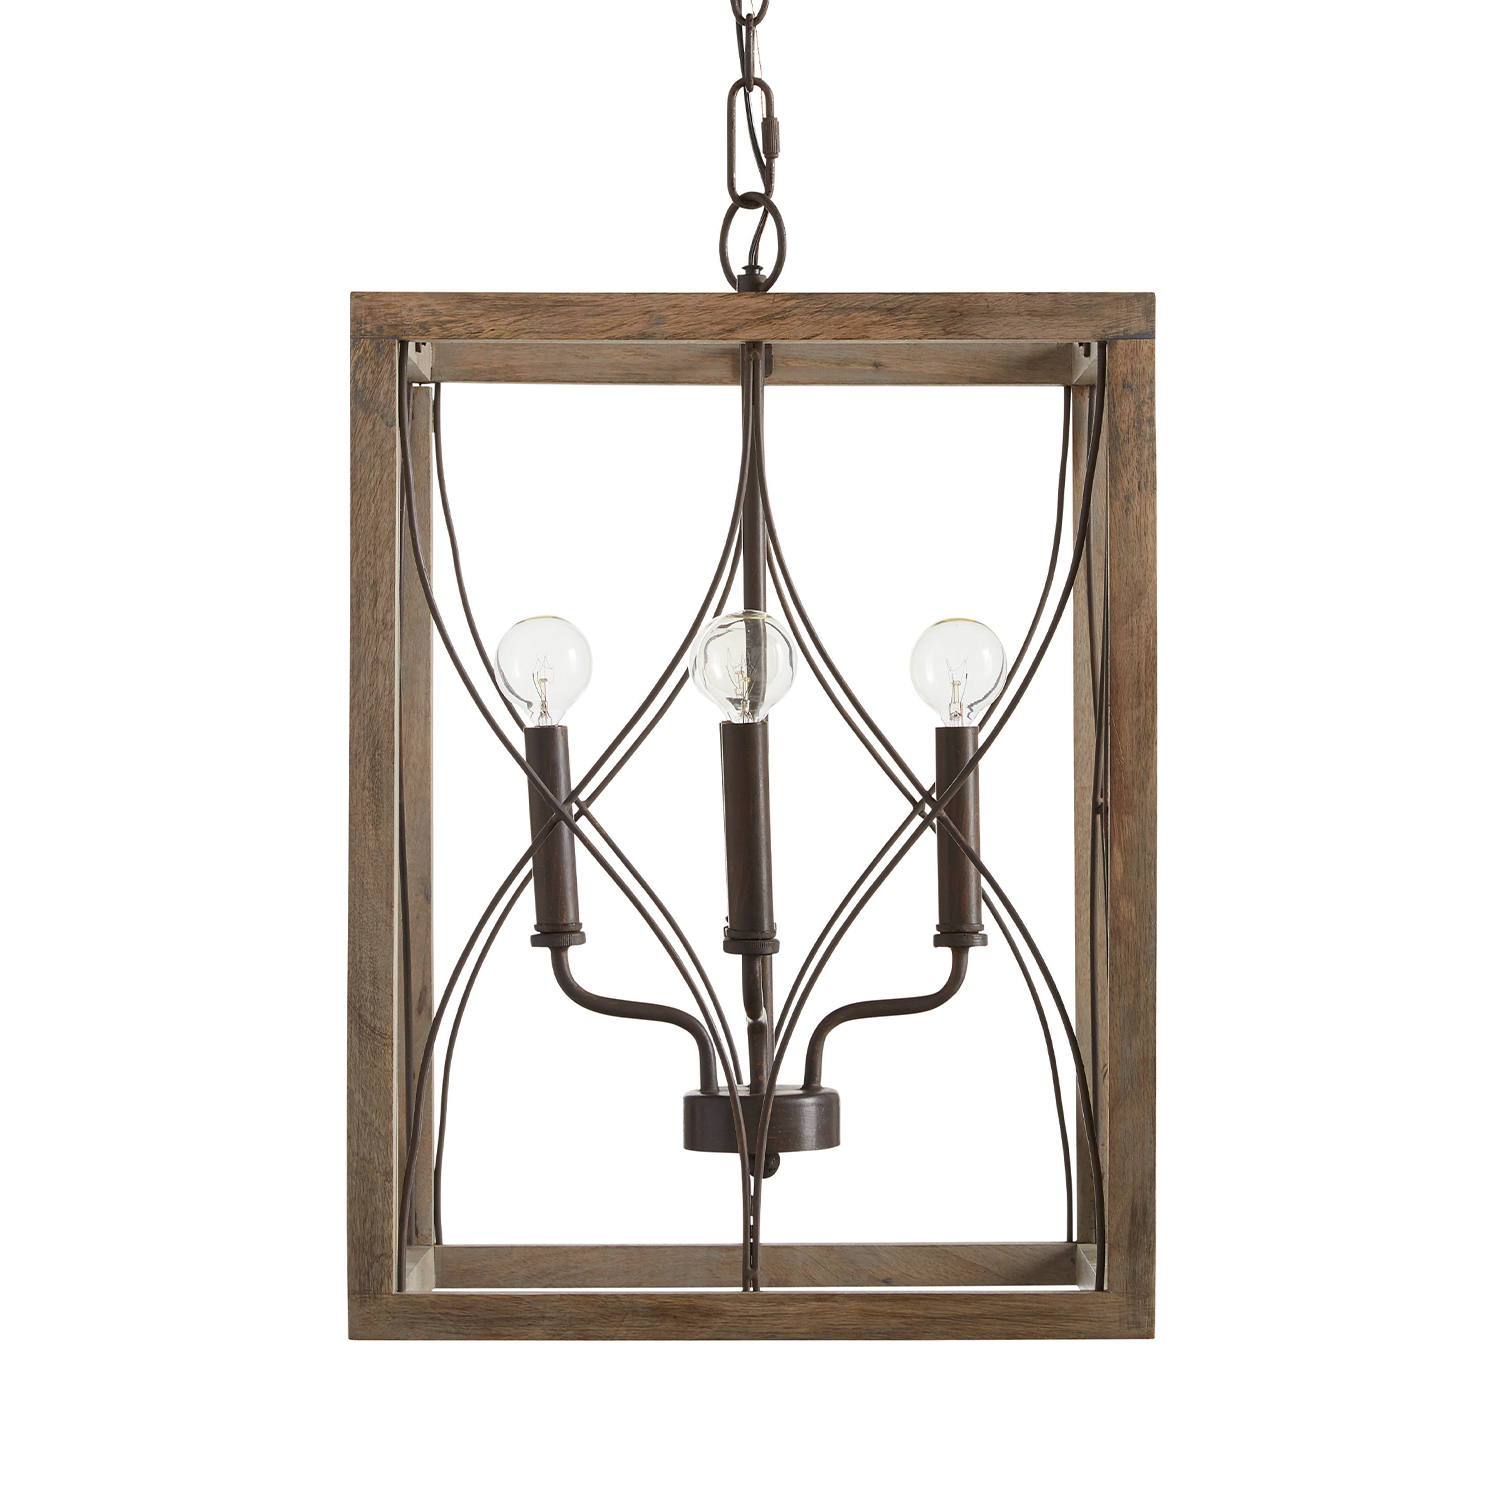 Tybee 4-light foyer pendant